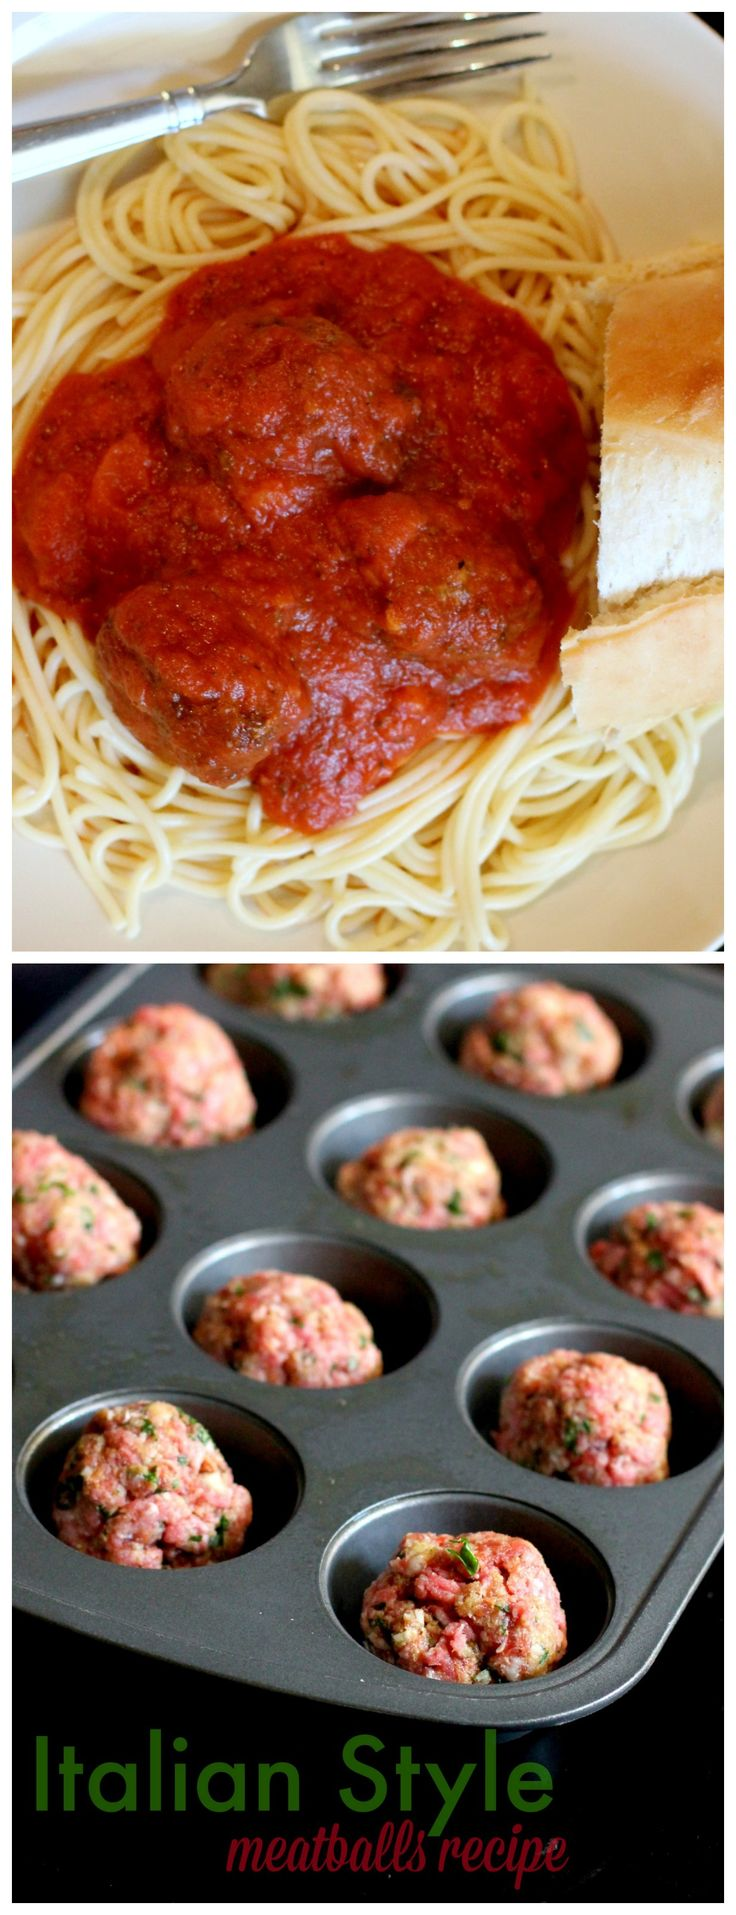 Italian Style meatballs that are unique and delicious, a crowd pleaser! You will never eat another homemade meatball recipe after you try this! www.pinkwhen.com